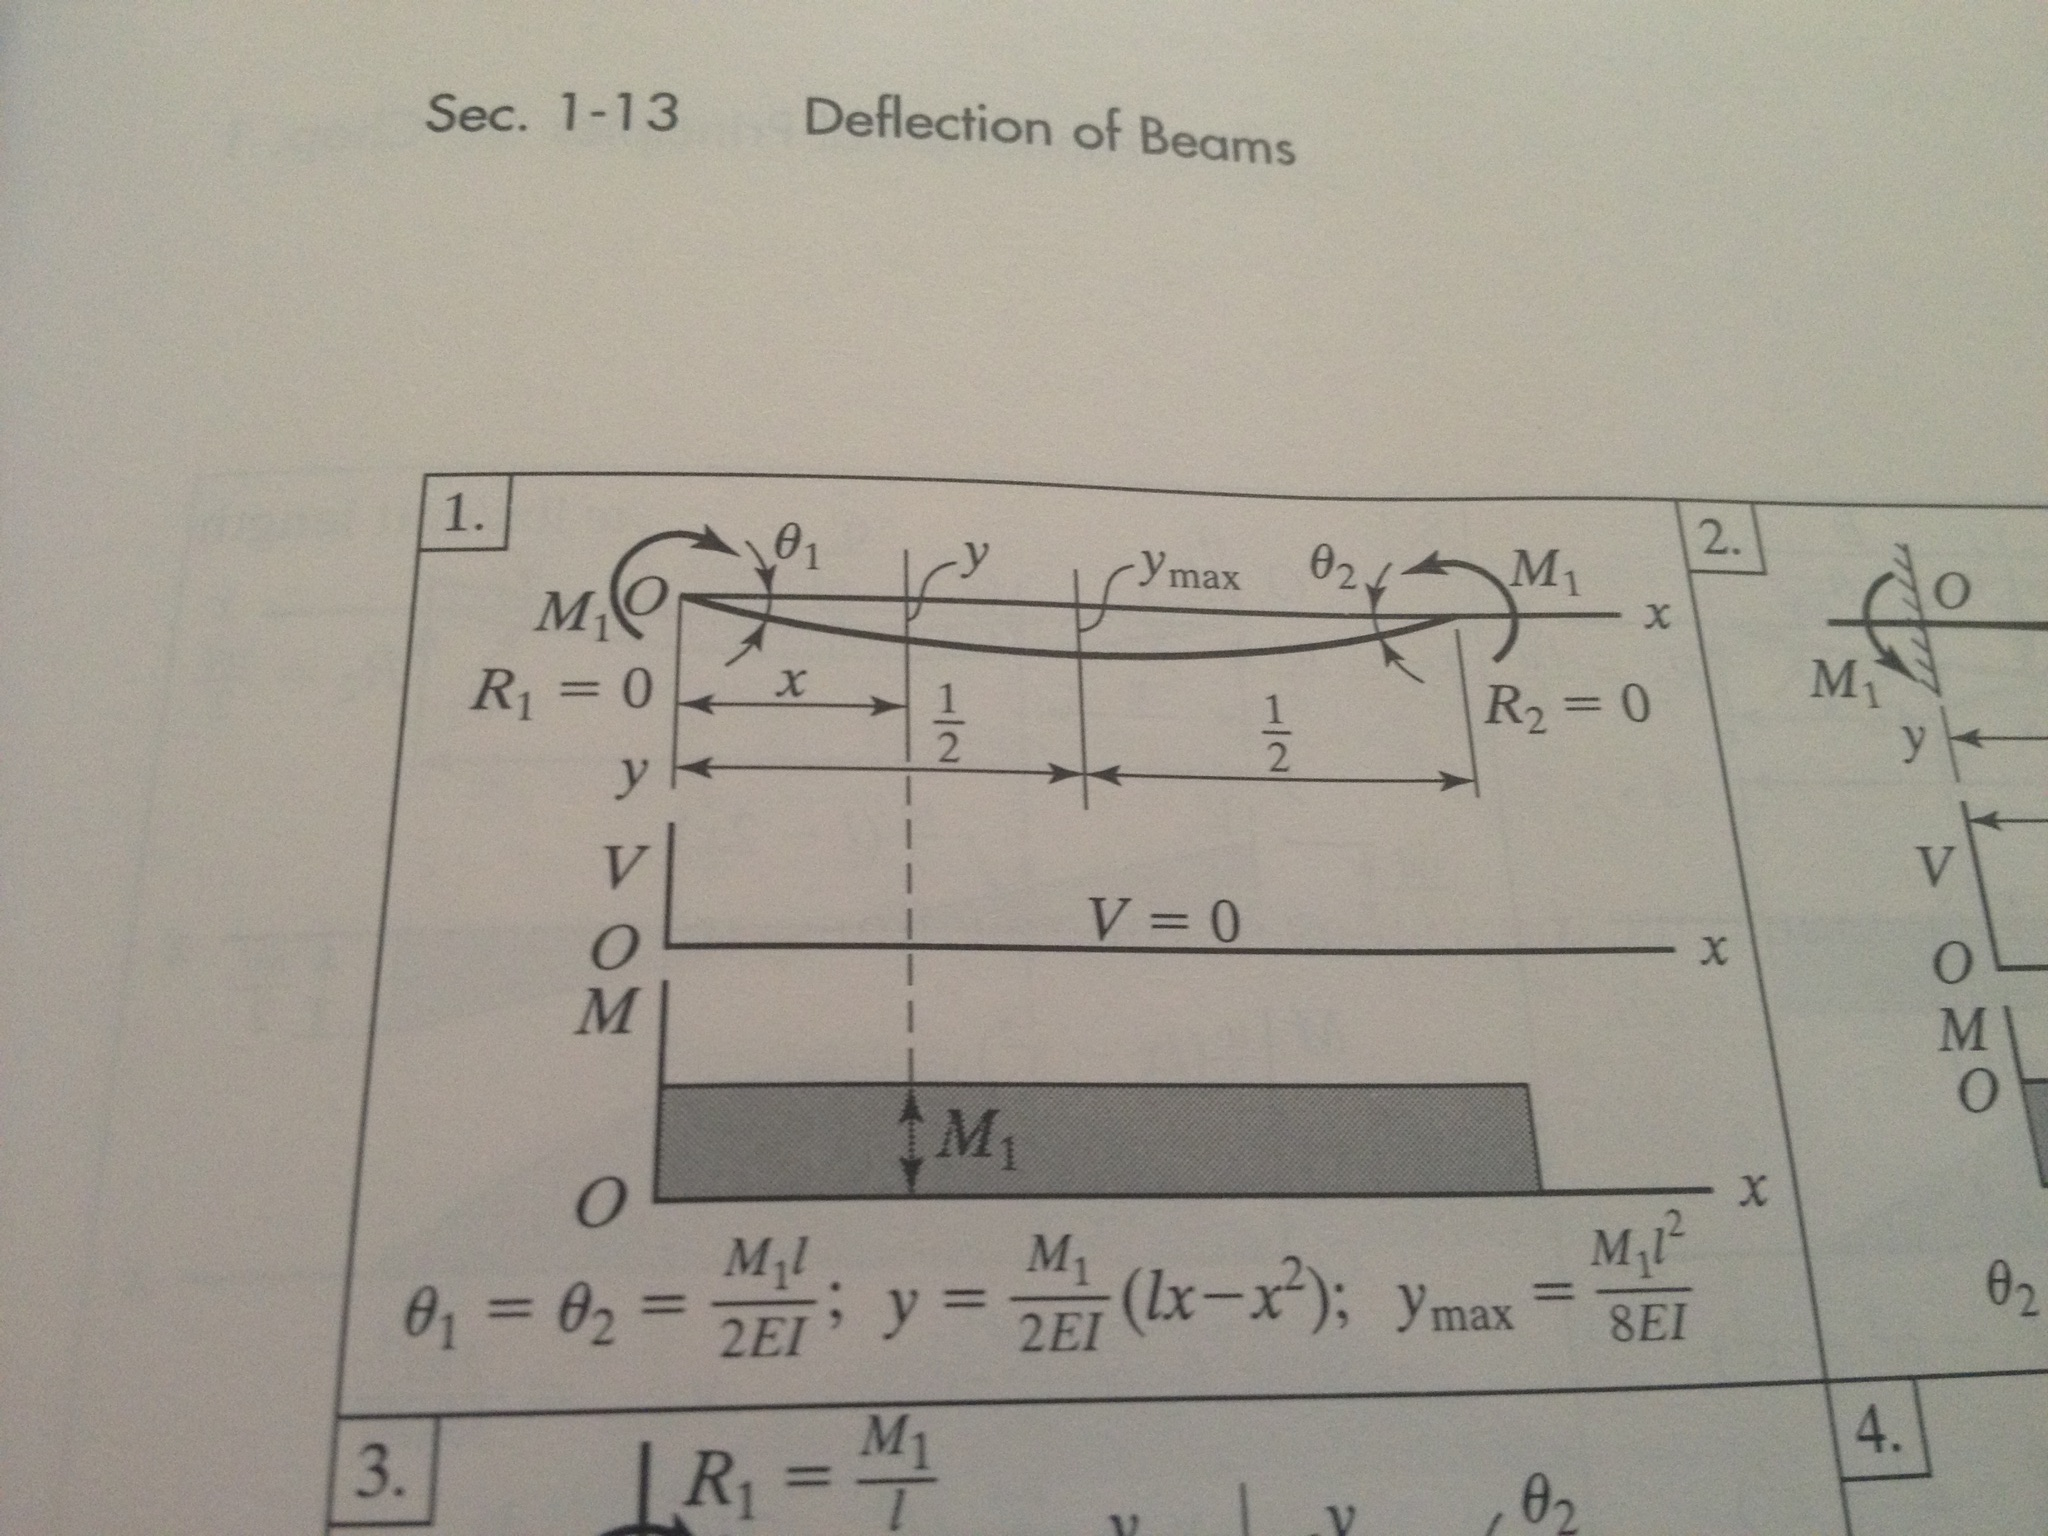 Derive equations for deflection (y) for case 1